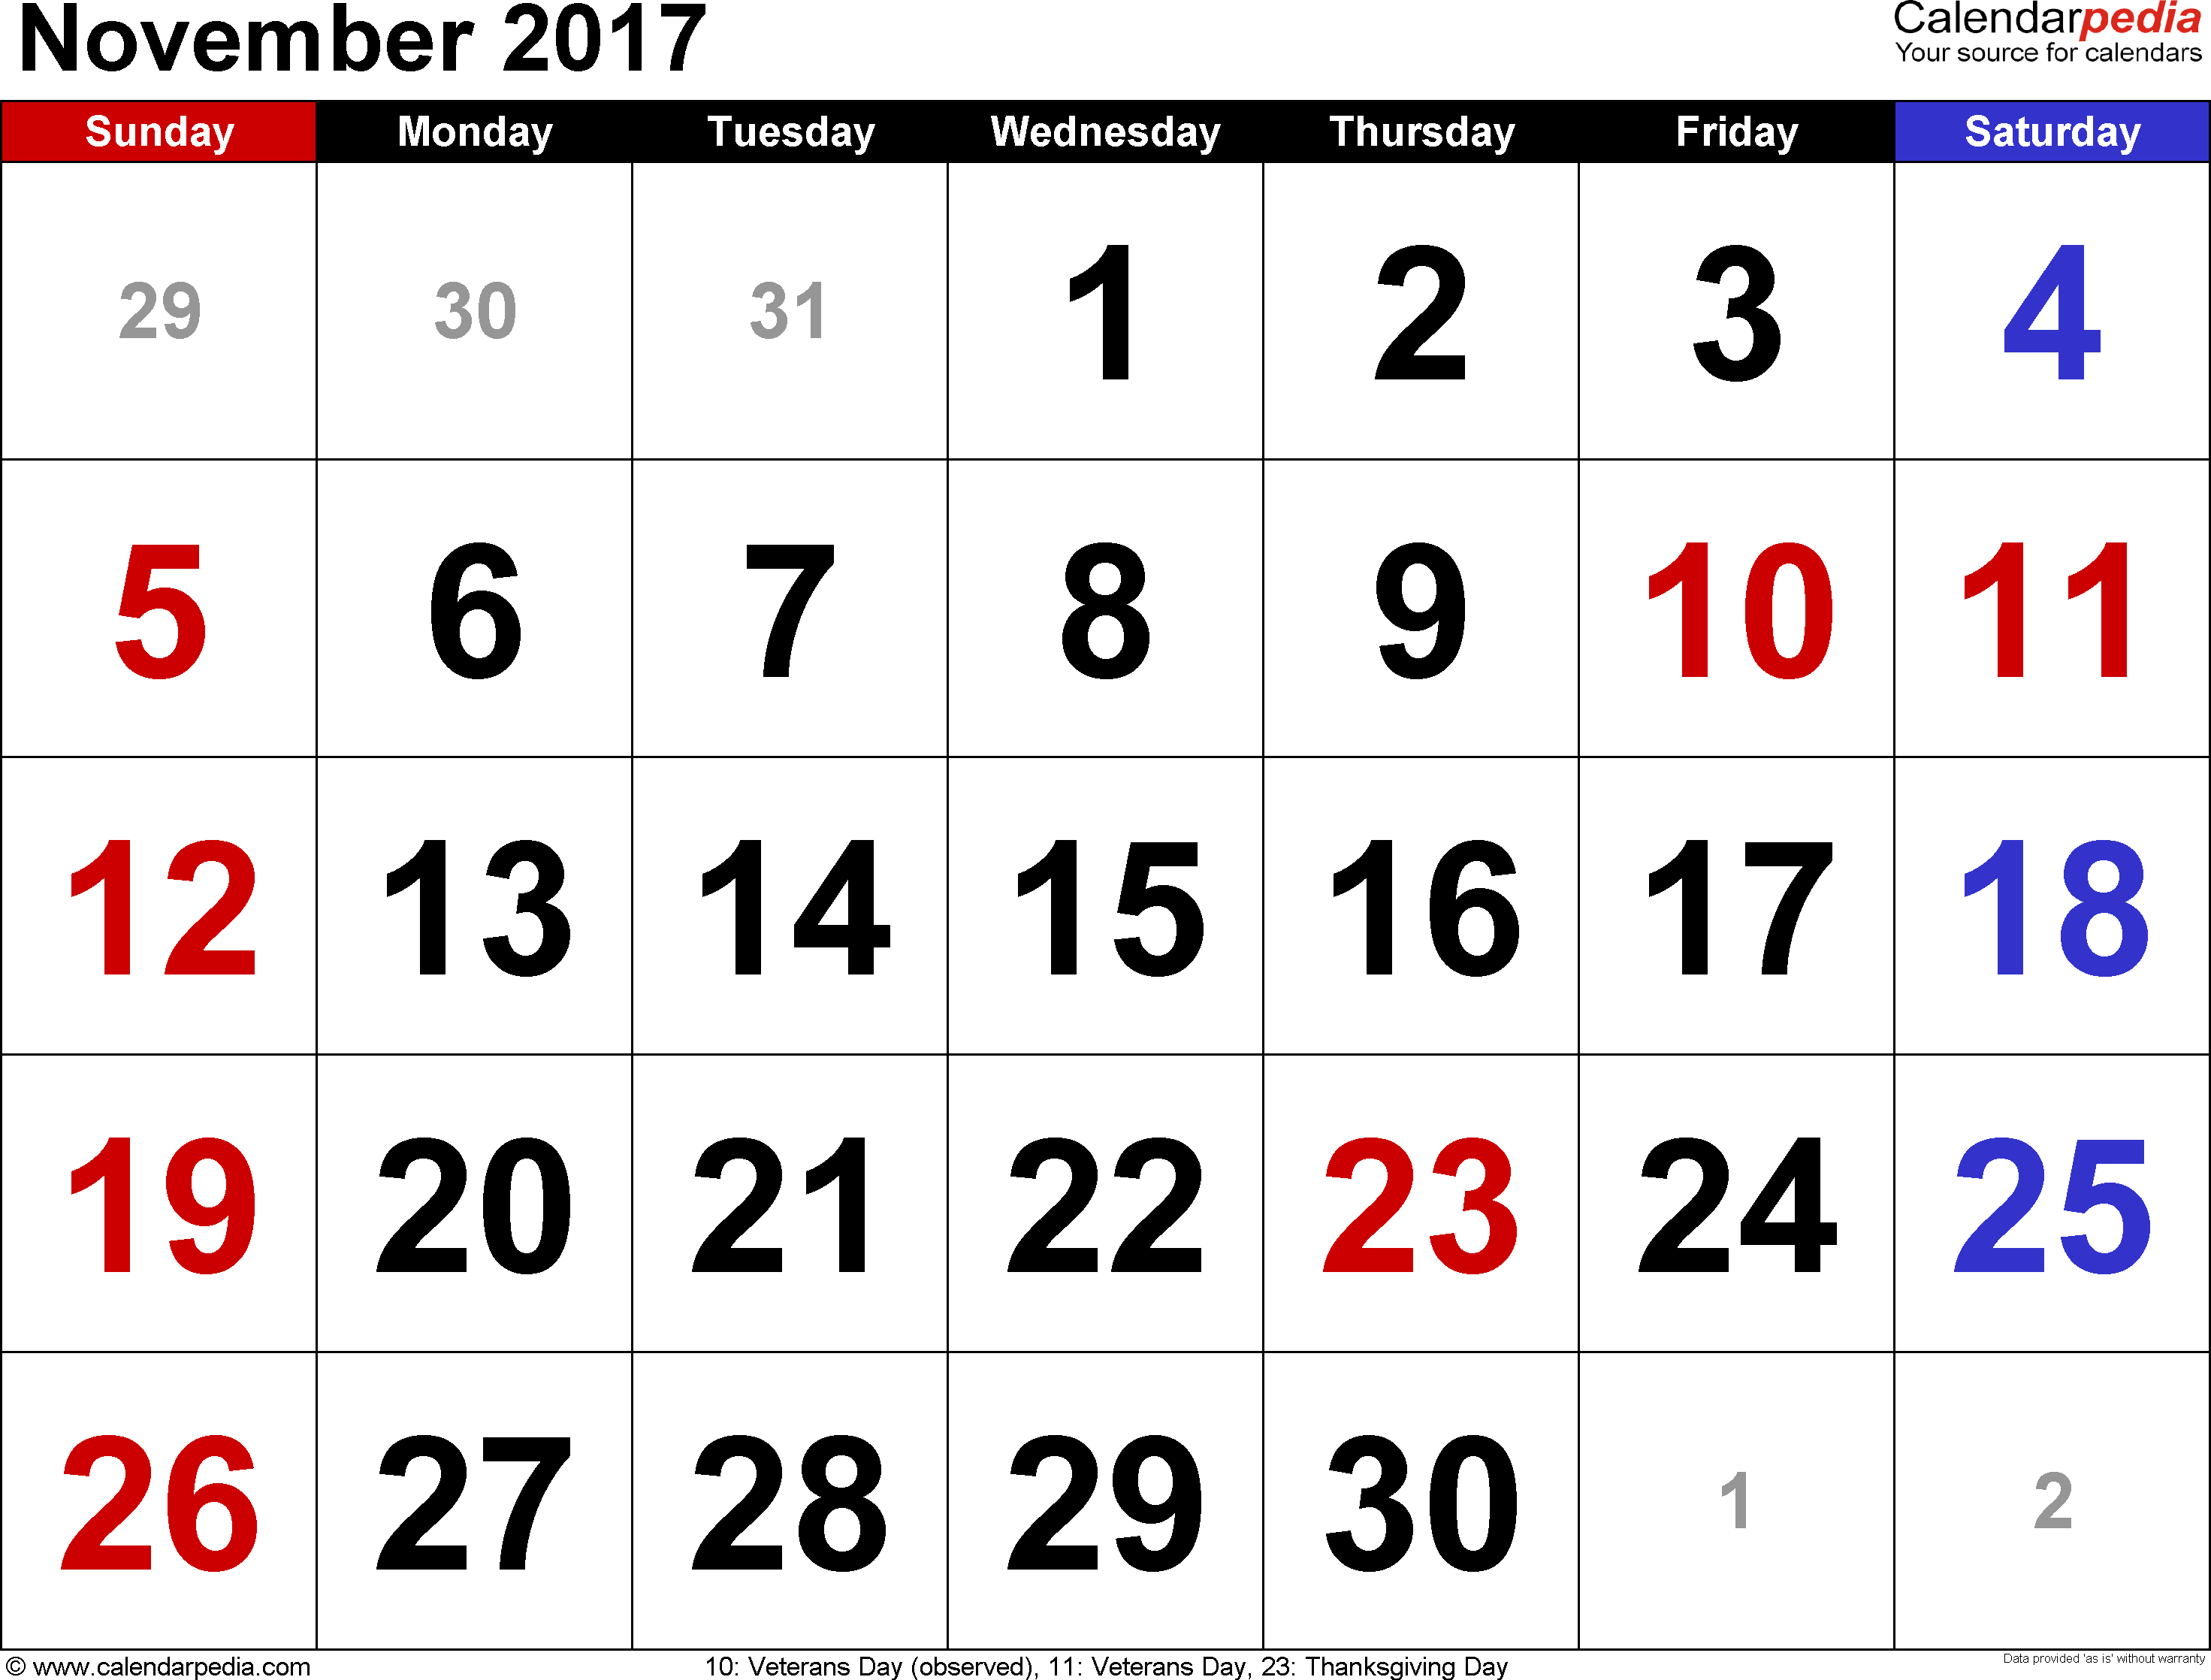 November 2017 calendar, landscape orientation, large numerals, available as printable templates for Word, Excel and PDF